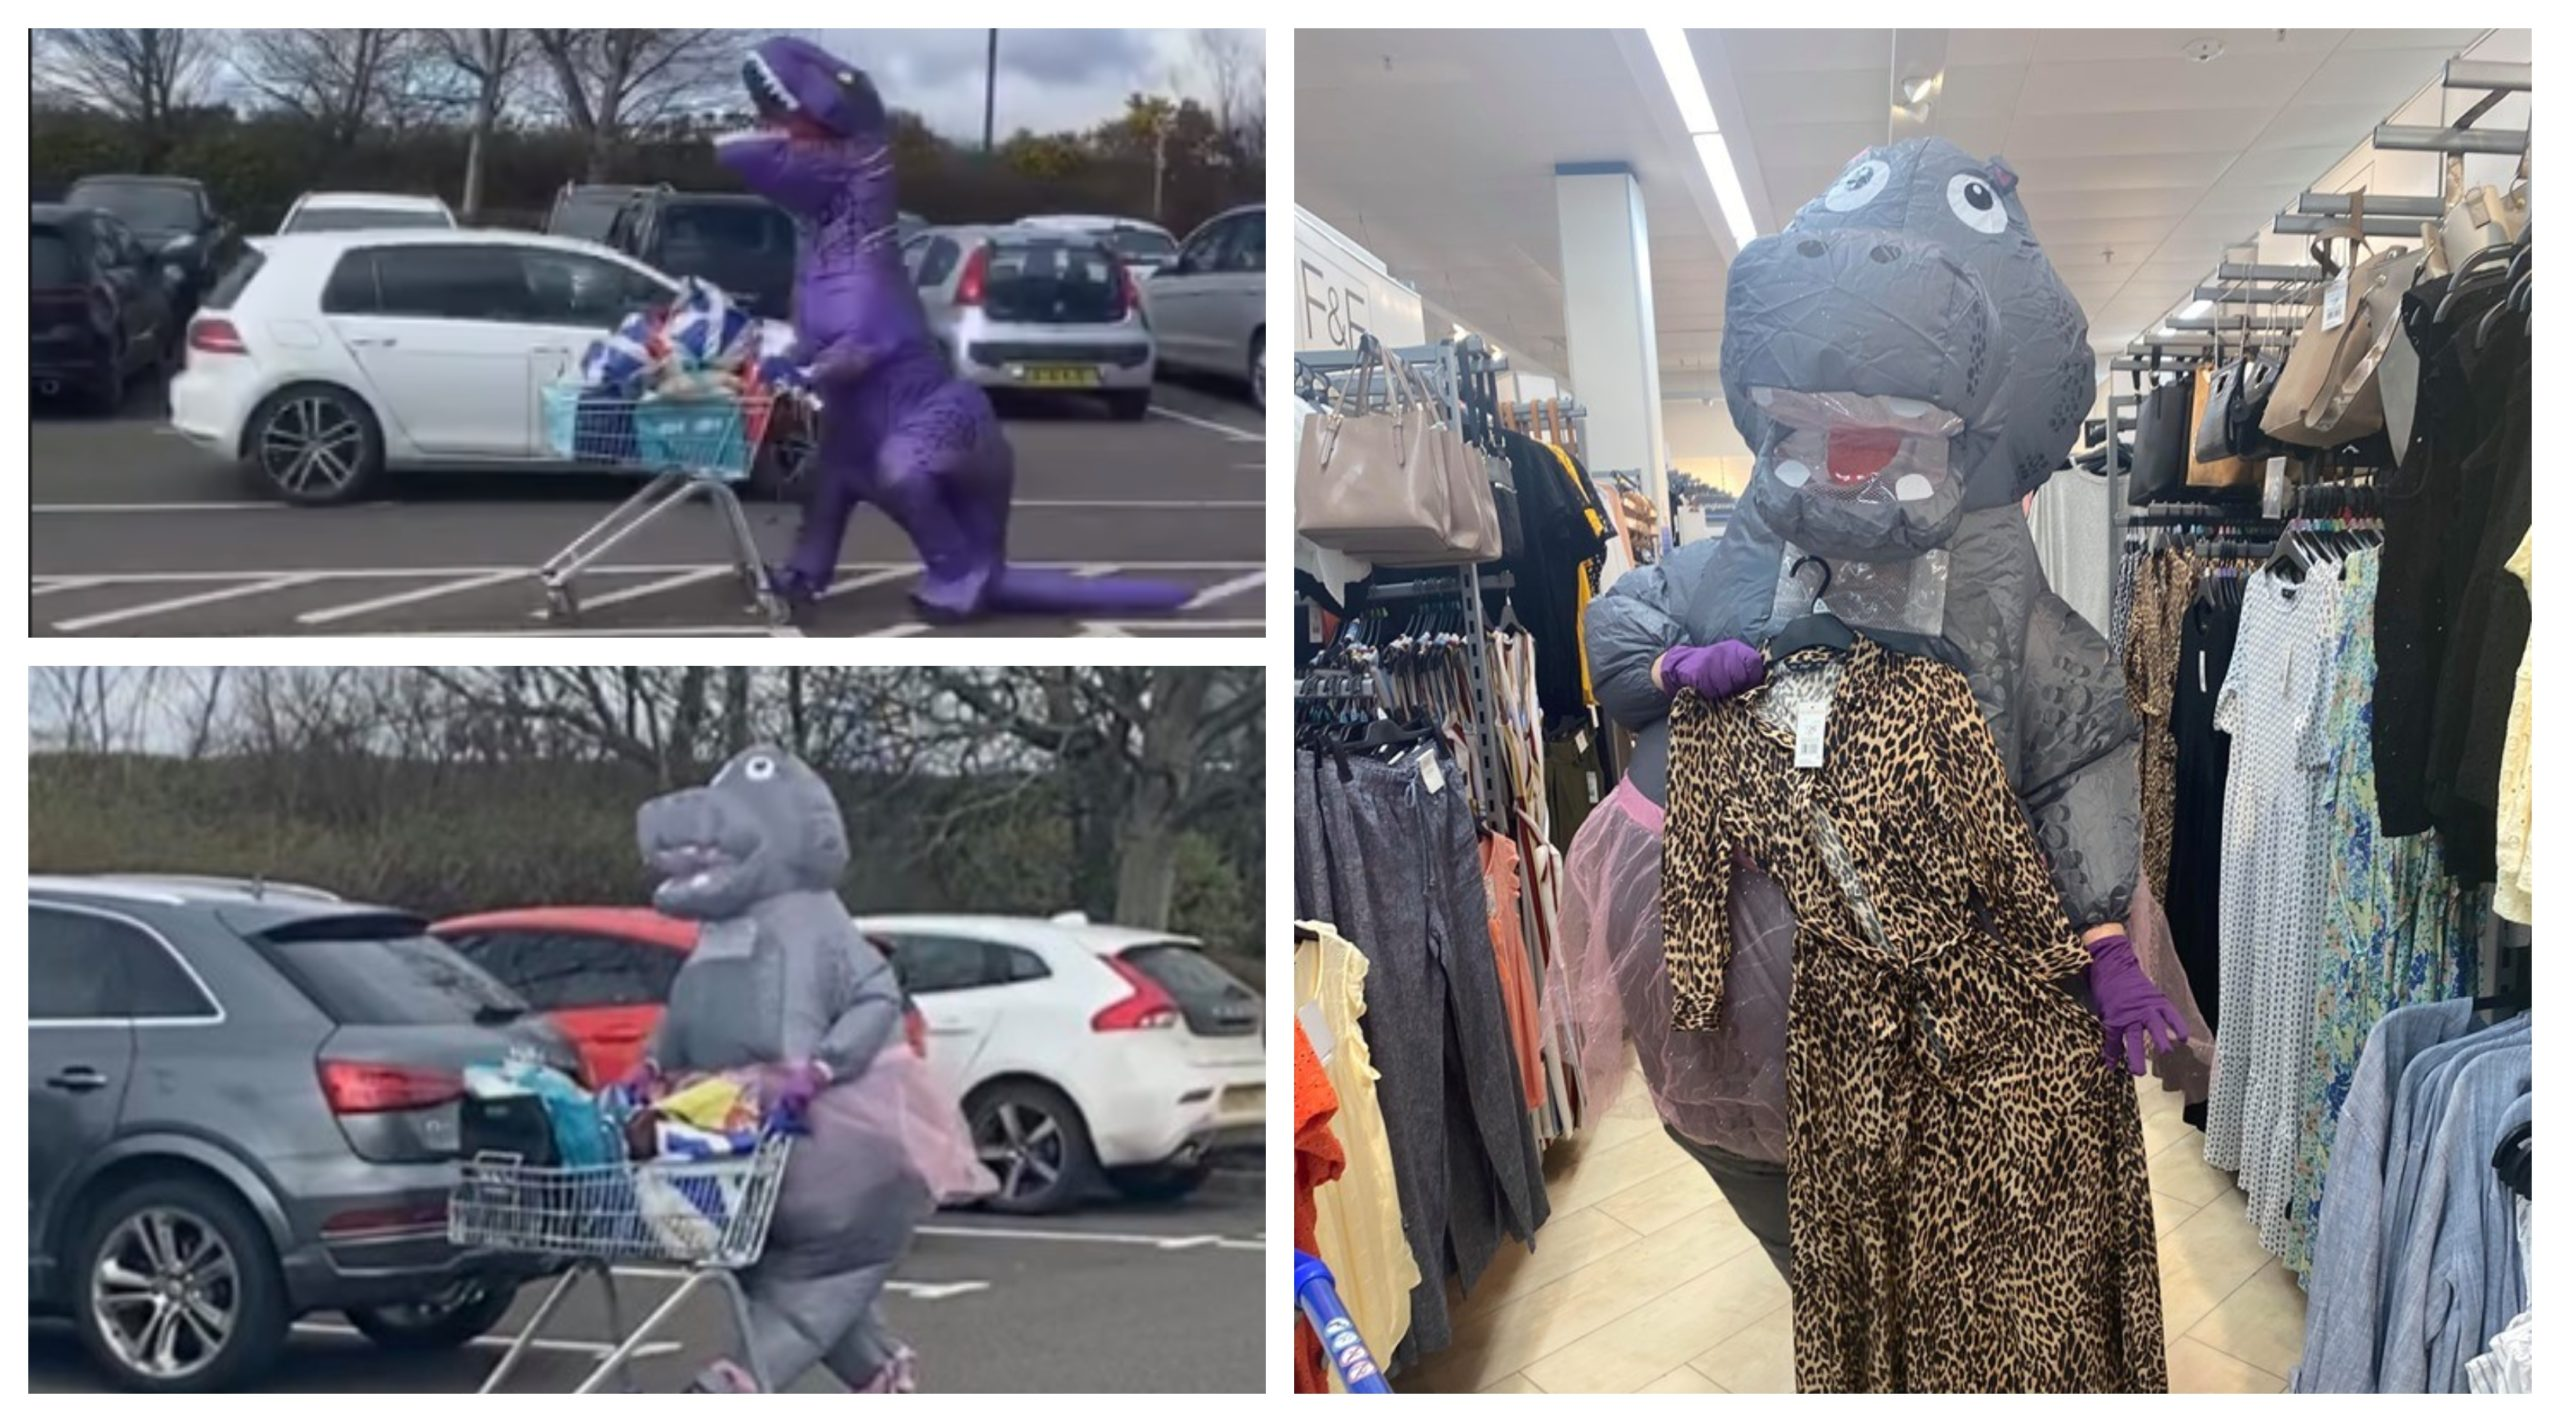 Debbie Rafferty, a security consultant and counter-terrorism student from Montrose, has been lifting the spirits of everyone during lockdown by dressing up in silly costumes to do her shopping.